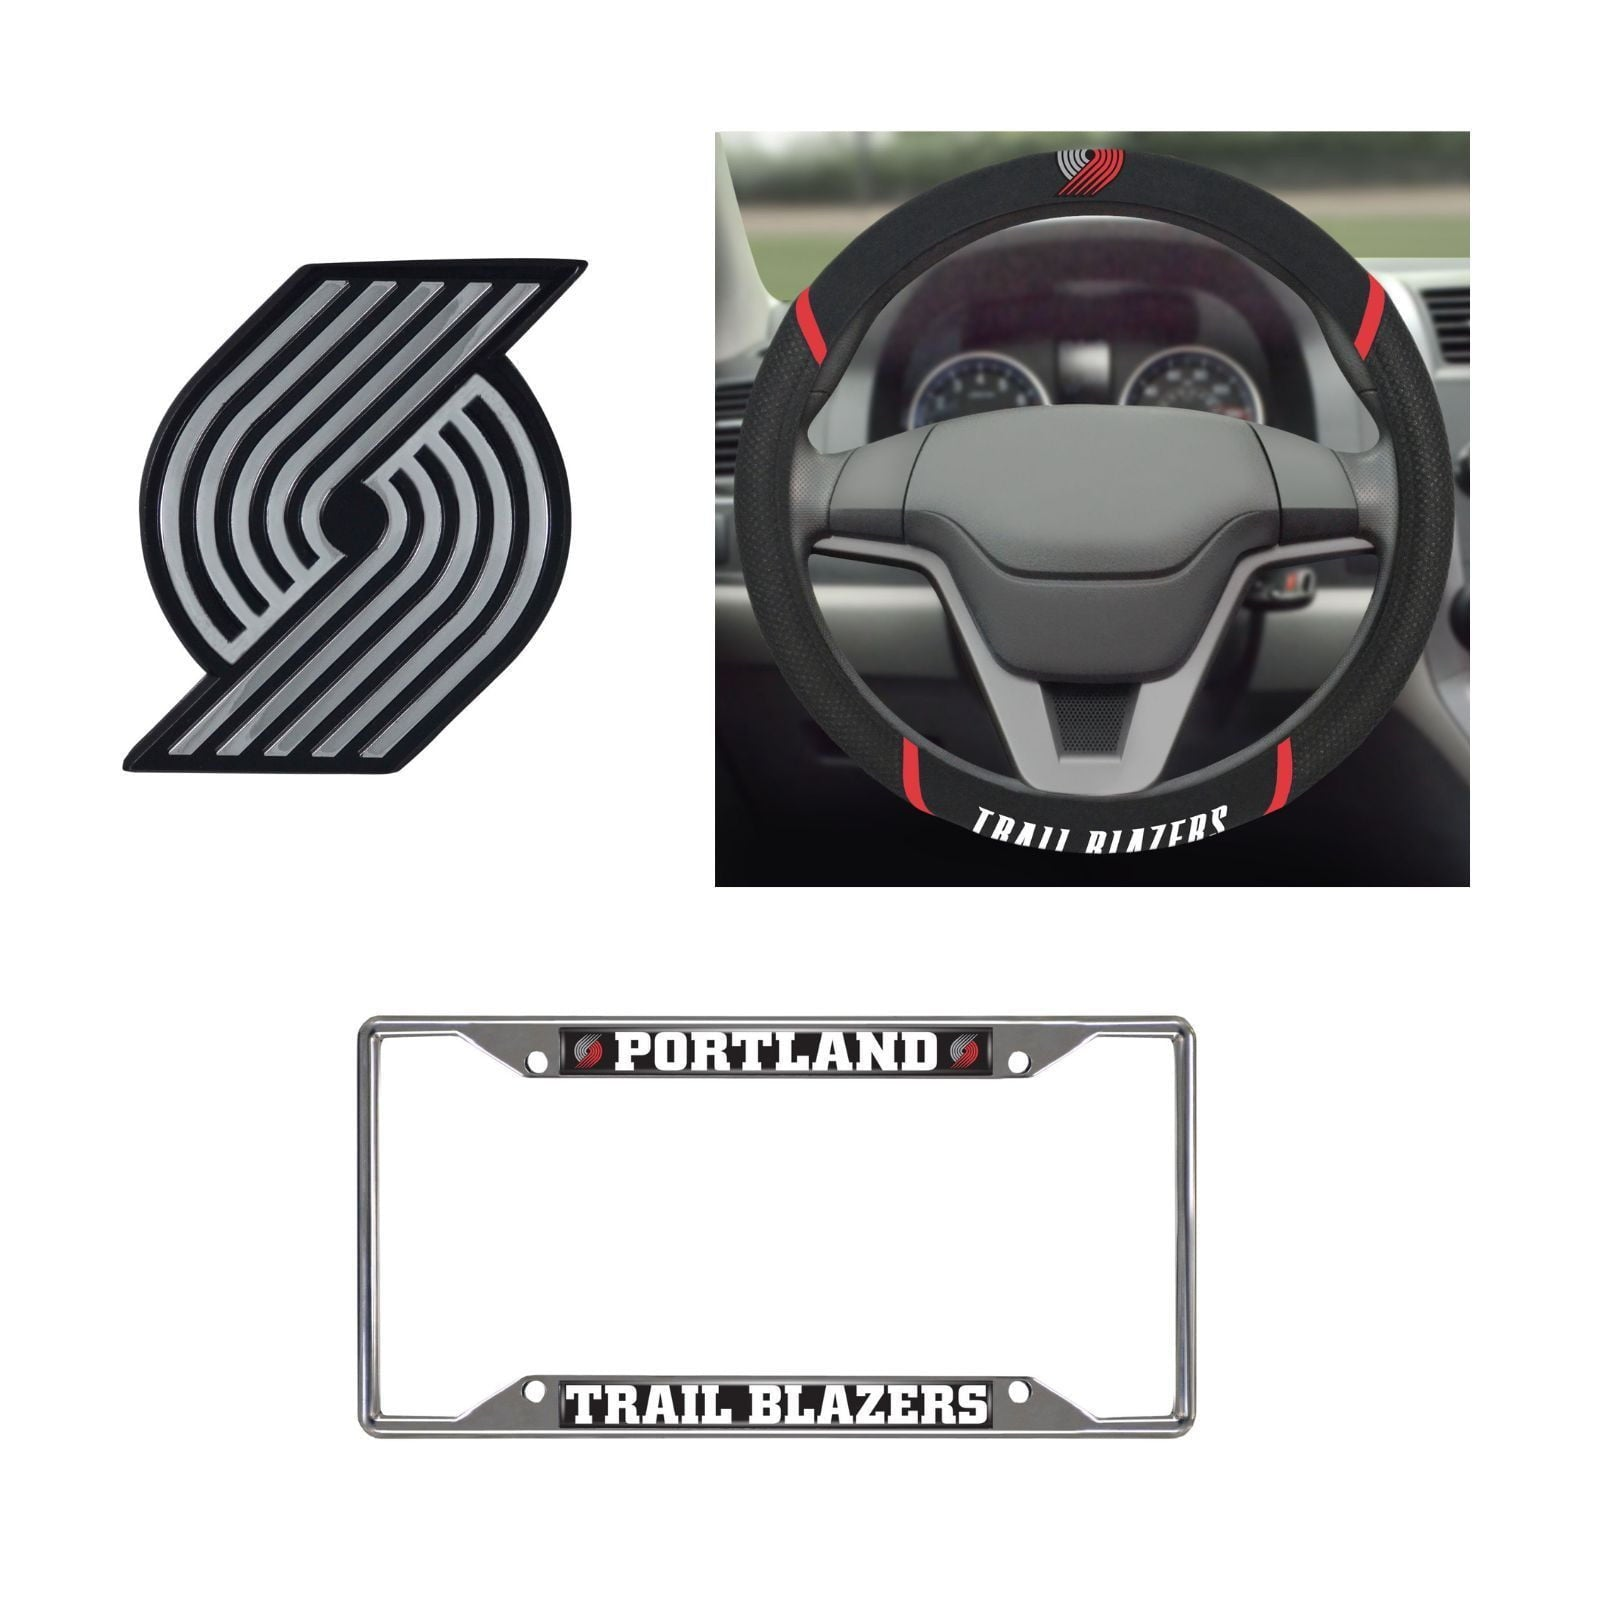 Portland Trail Blazers Steering Wheel Cover,License Plate Frame,3D Chrome Emblem